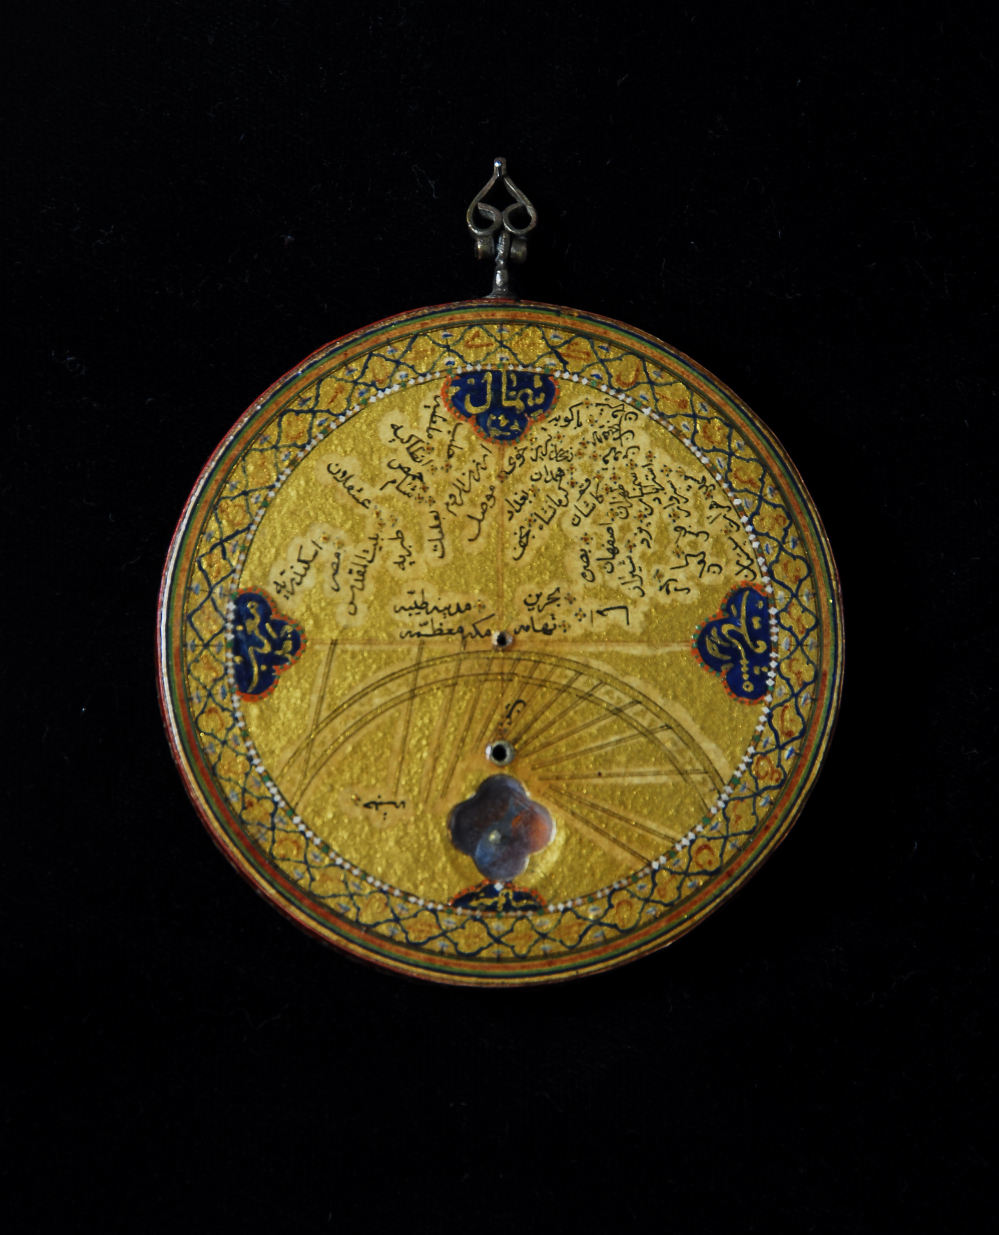 preview image for Qibla Indicator and Horizontal Pin-Gnomon Dial, Persian?, 19th Century